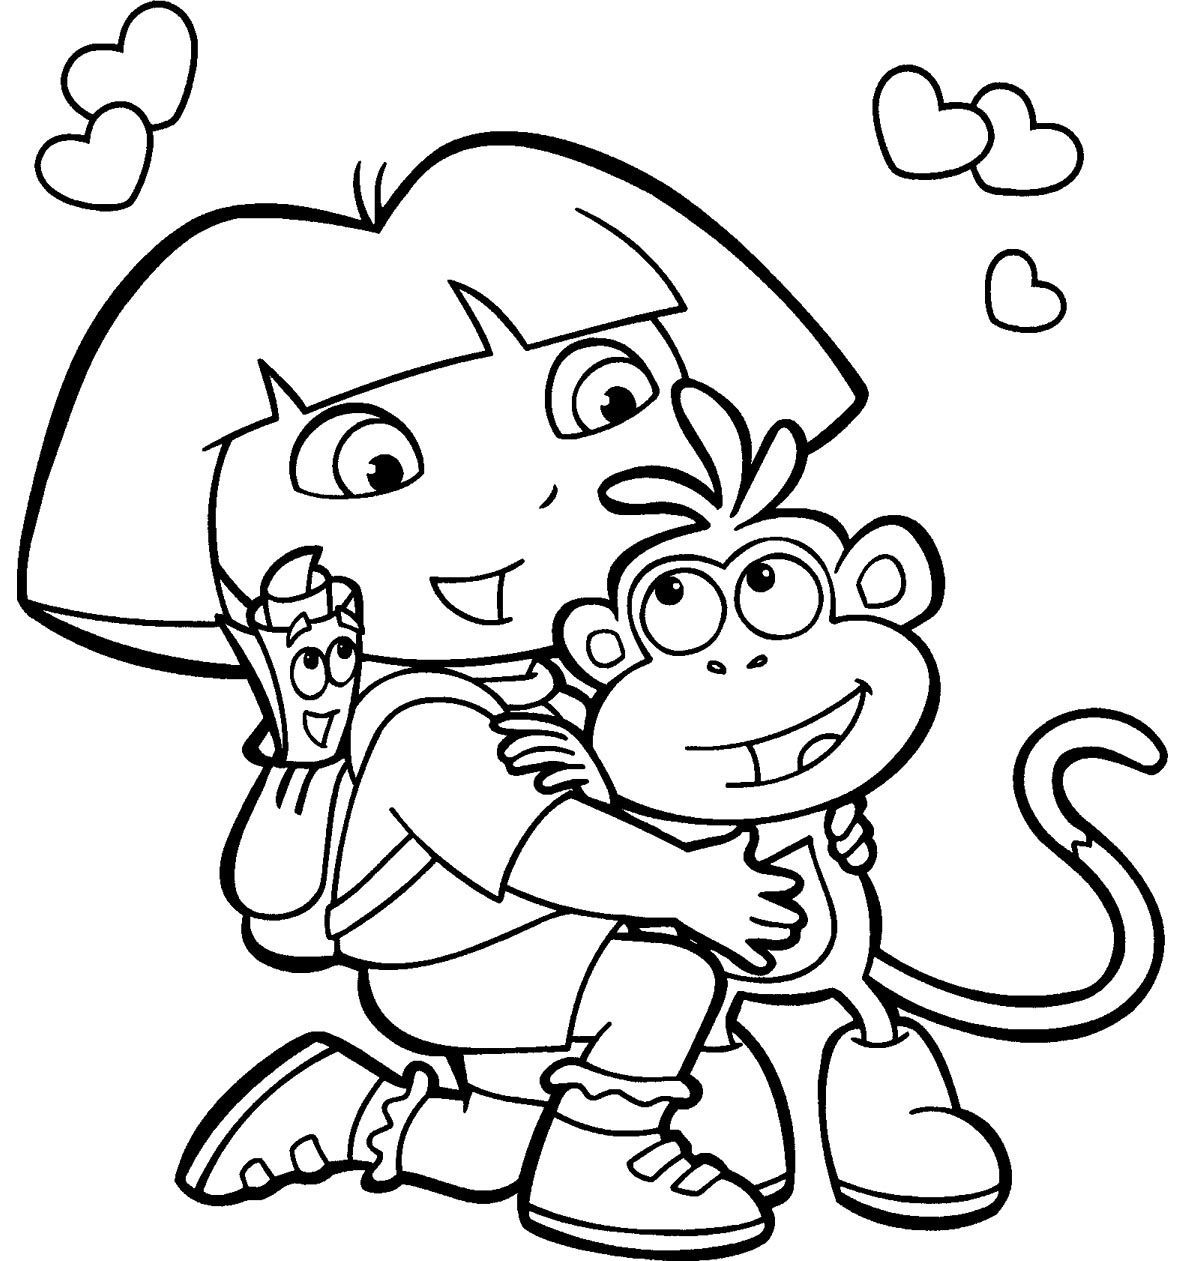 free download dora coloring pages - photo#2